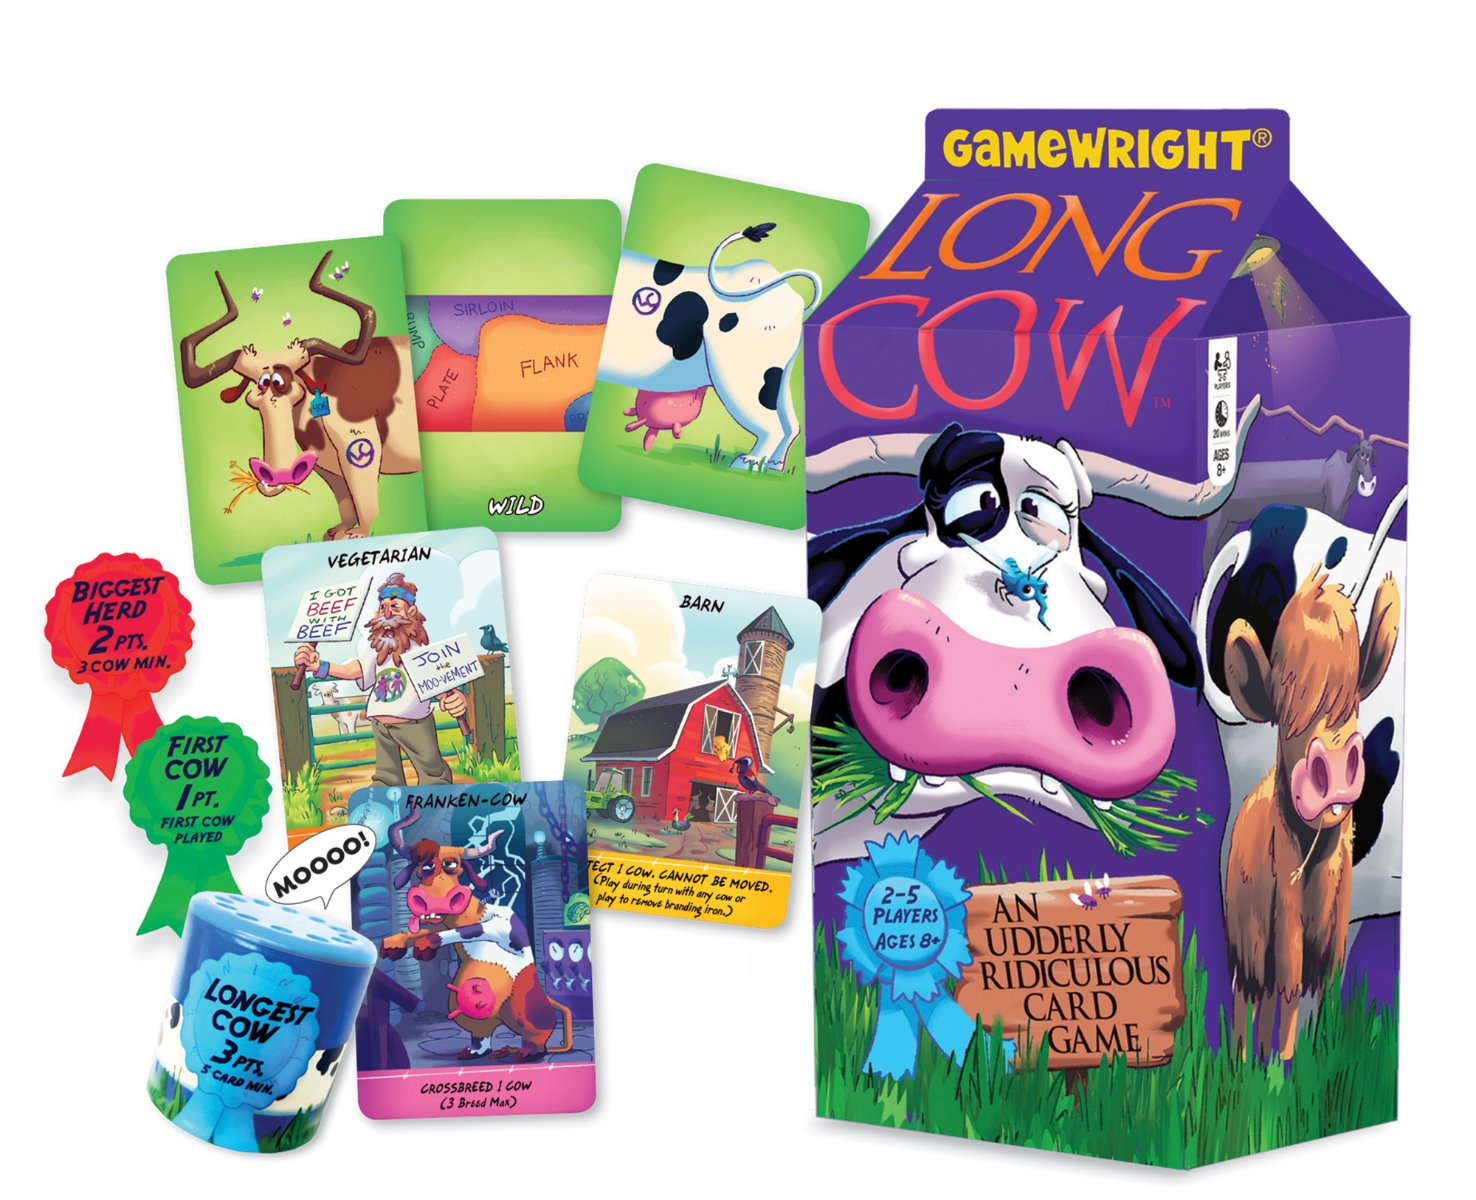 Gamewright - Long Cow